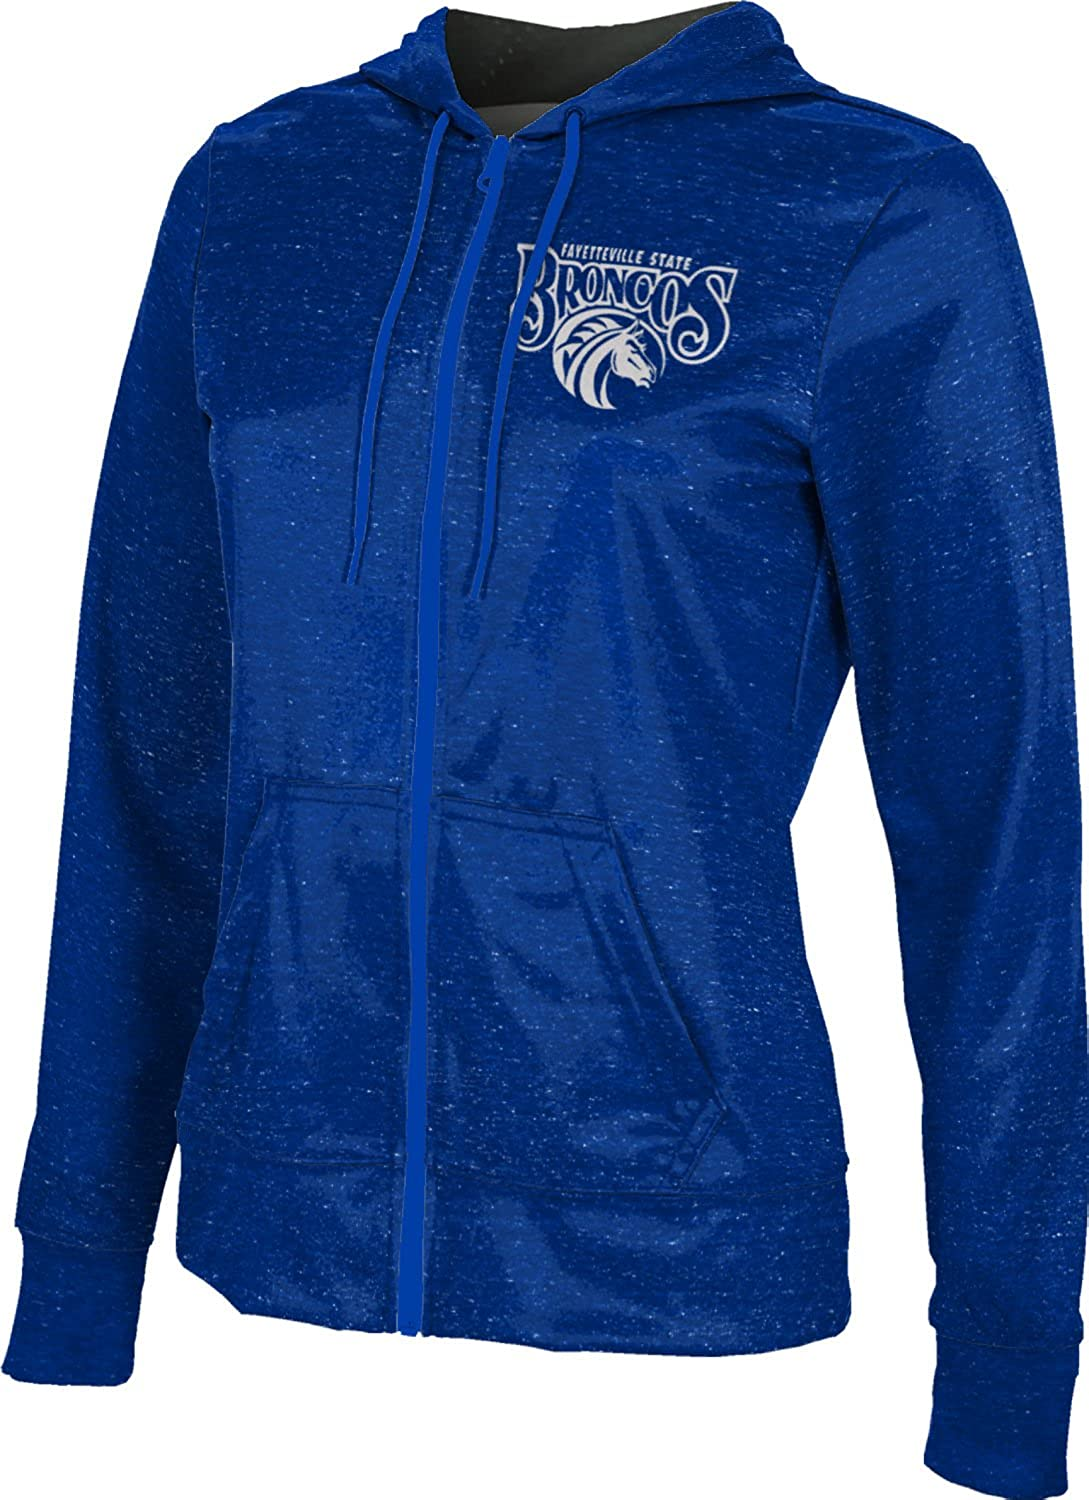 ProSphere Women's Fayetteville State University Heather Fullzip Hoodie